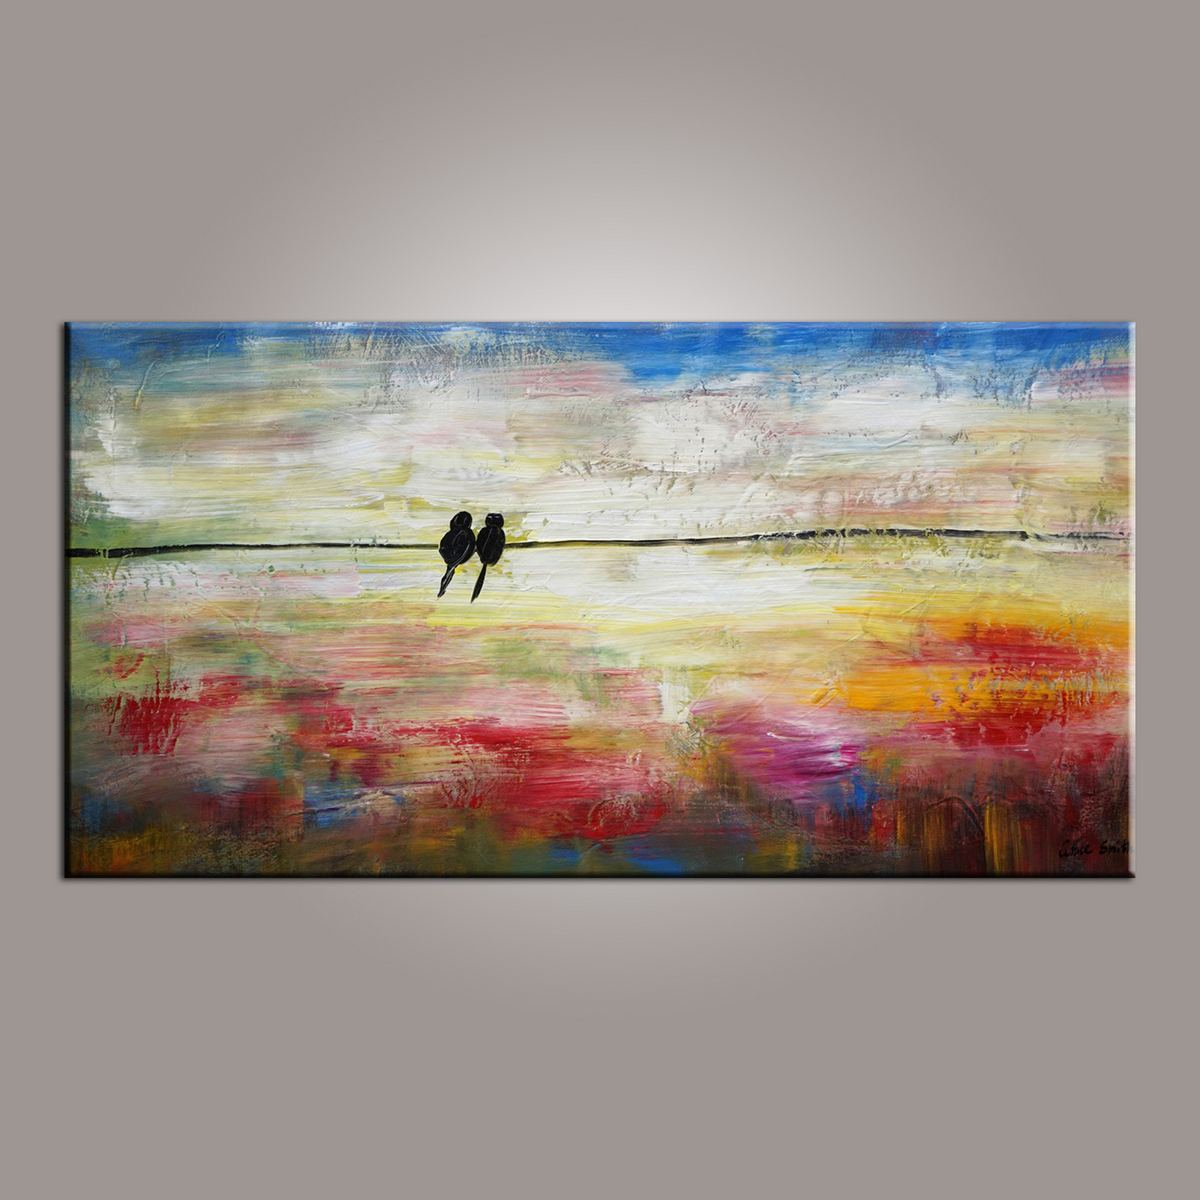 Modern Art, Abstract Art, Love Birds Painting, Painting for Sale, Contemporary Art, Flower Art, Abstract Art, Living Room Wall Art, Canvas Art